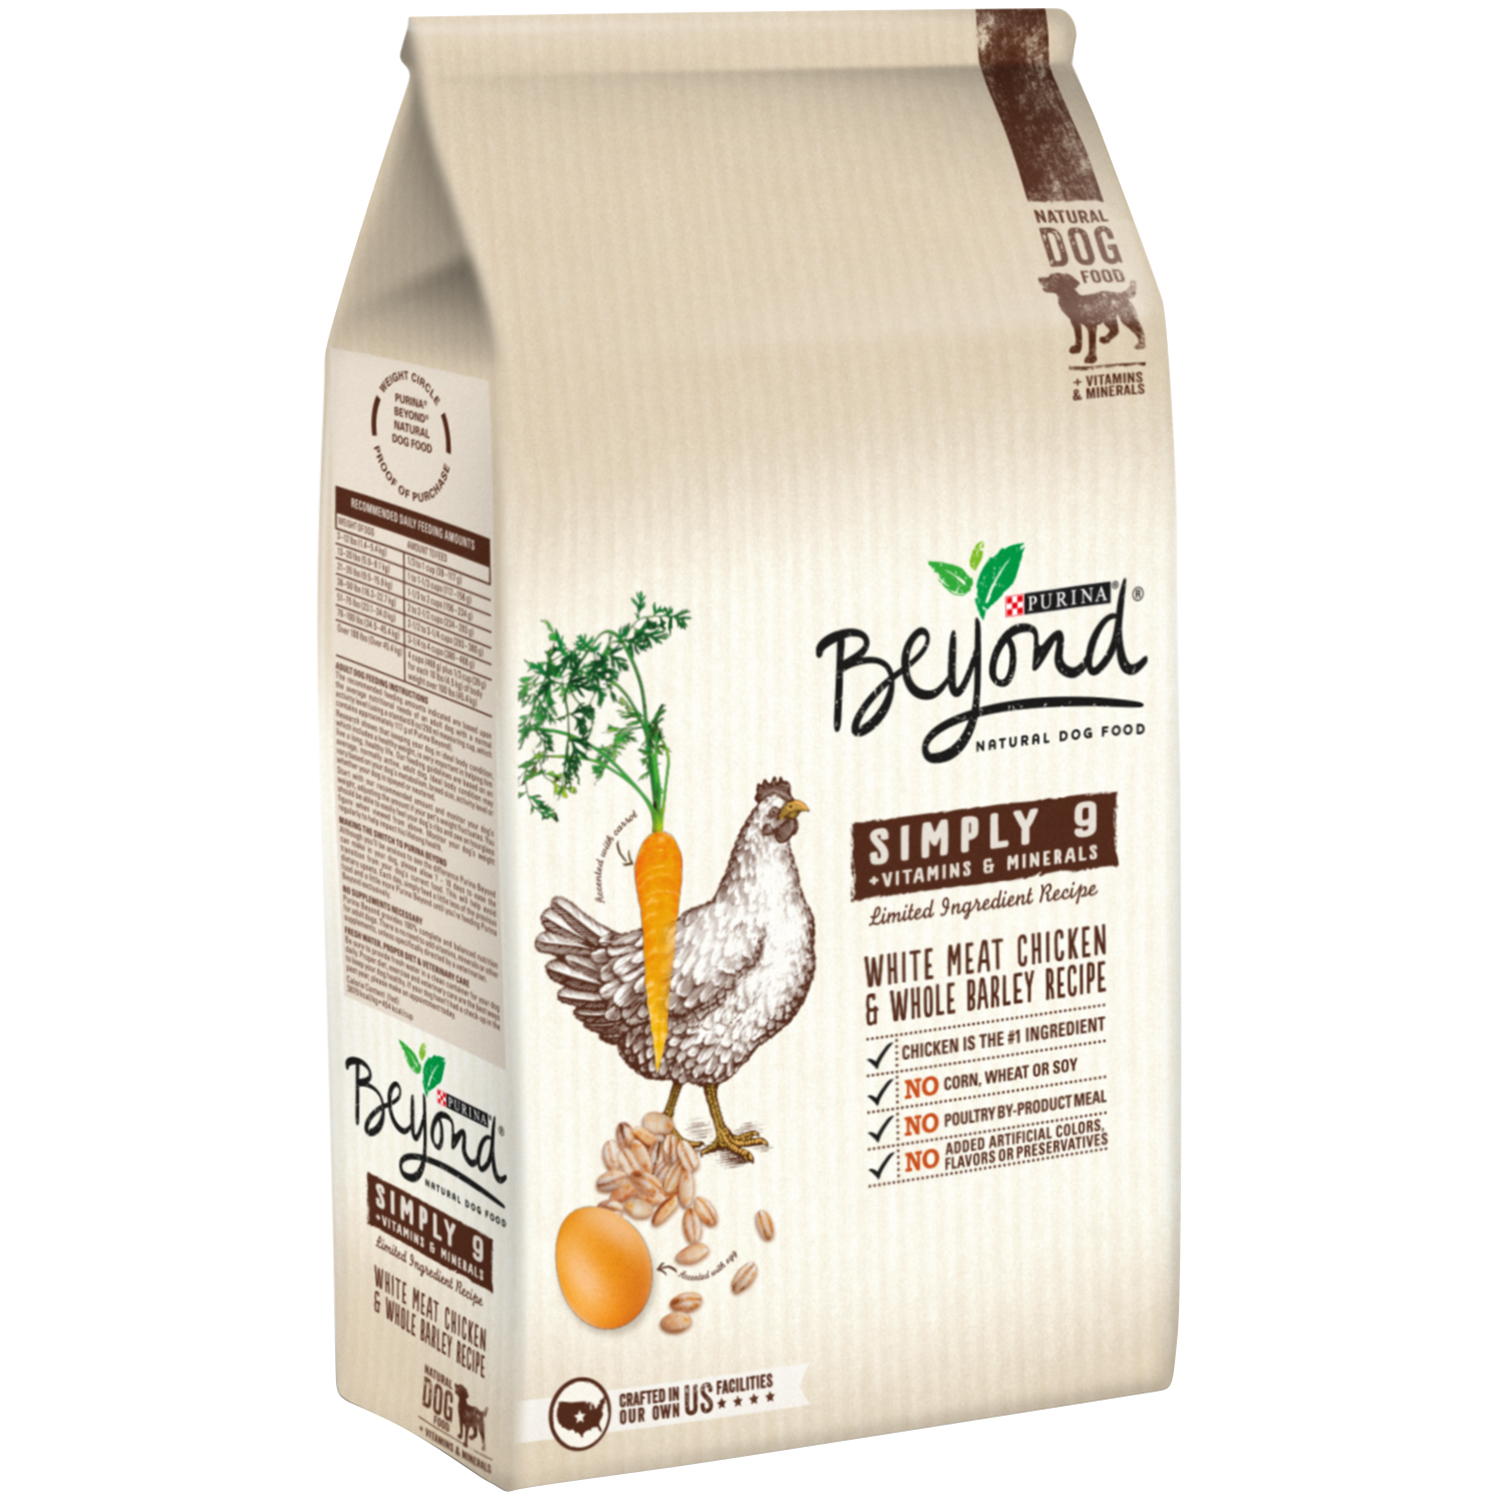 Purina Beyond Simply 9 White Meat Chicken & Whole Barley Recipe Dog Food 15.5 lb. Bag